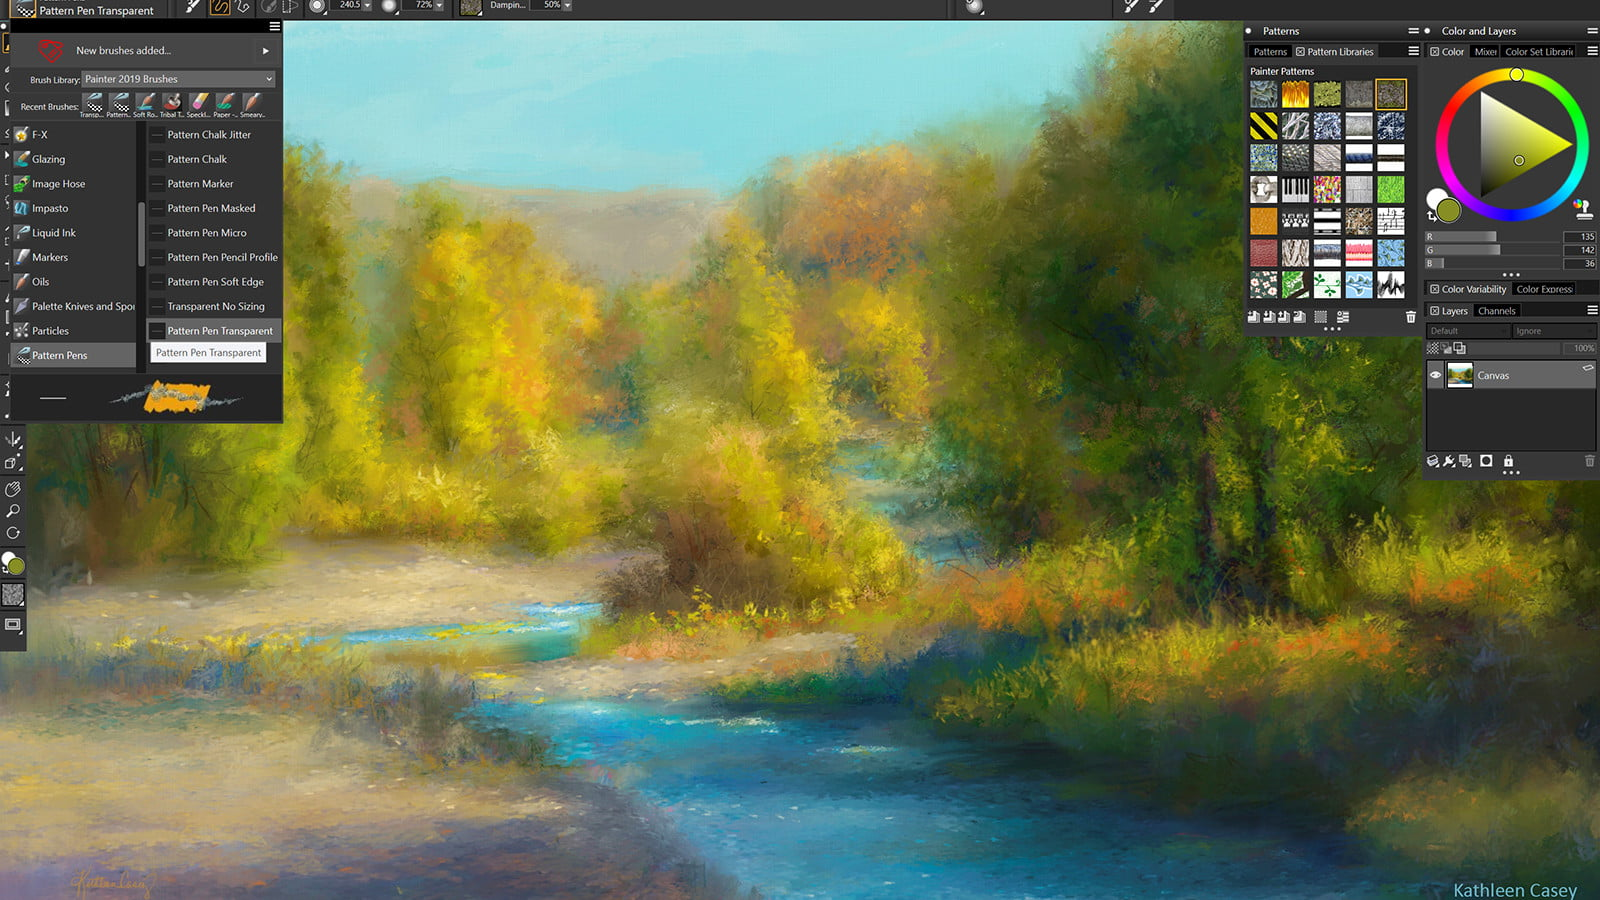 corel painter 2019 announced color  pattern pens and patterns photo workflow